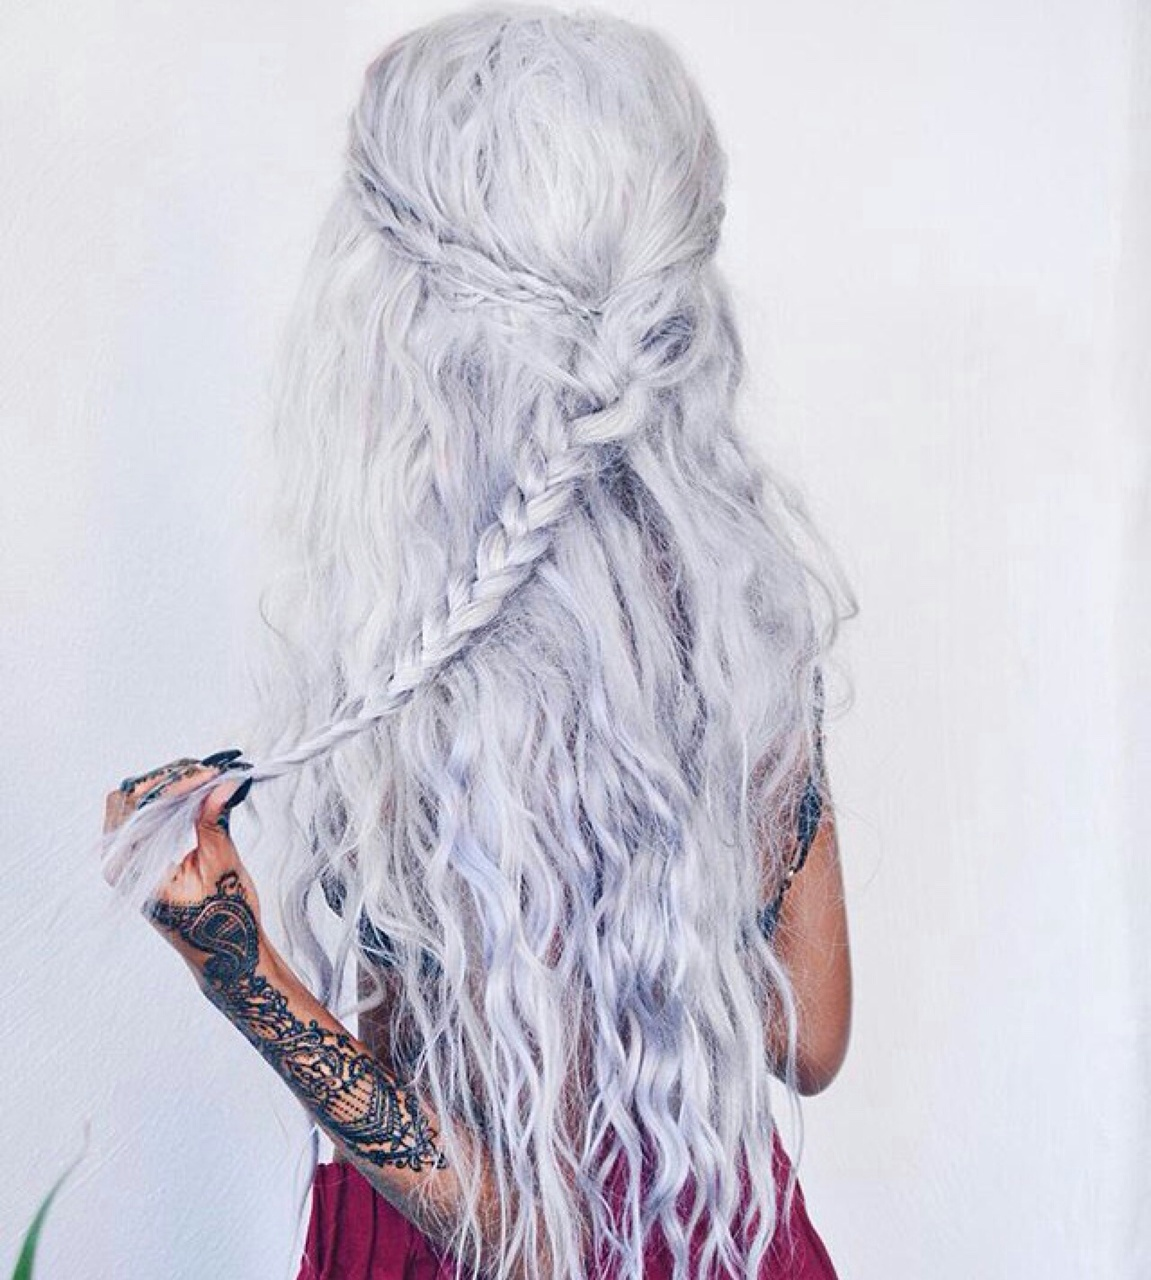 amazing, awesome, beautiful, beauty, braid, braided, braids, chic, color, cool, girl, girly, hair, haircuts, hairstyles, hand tattoo, long hair, photo, picture, pretty, silver hair, tattoo, tumblr, white hair